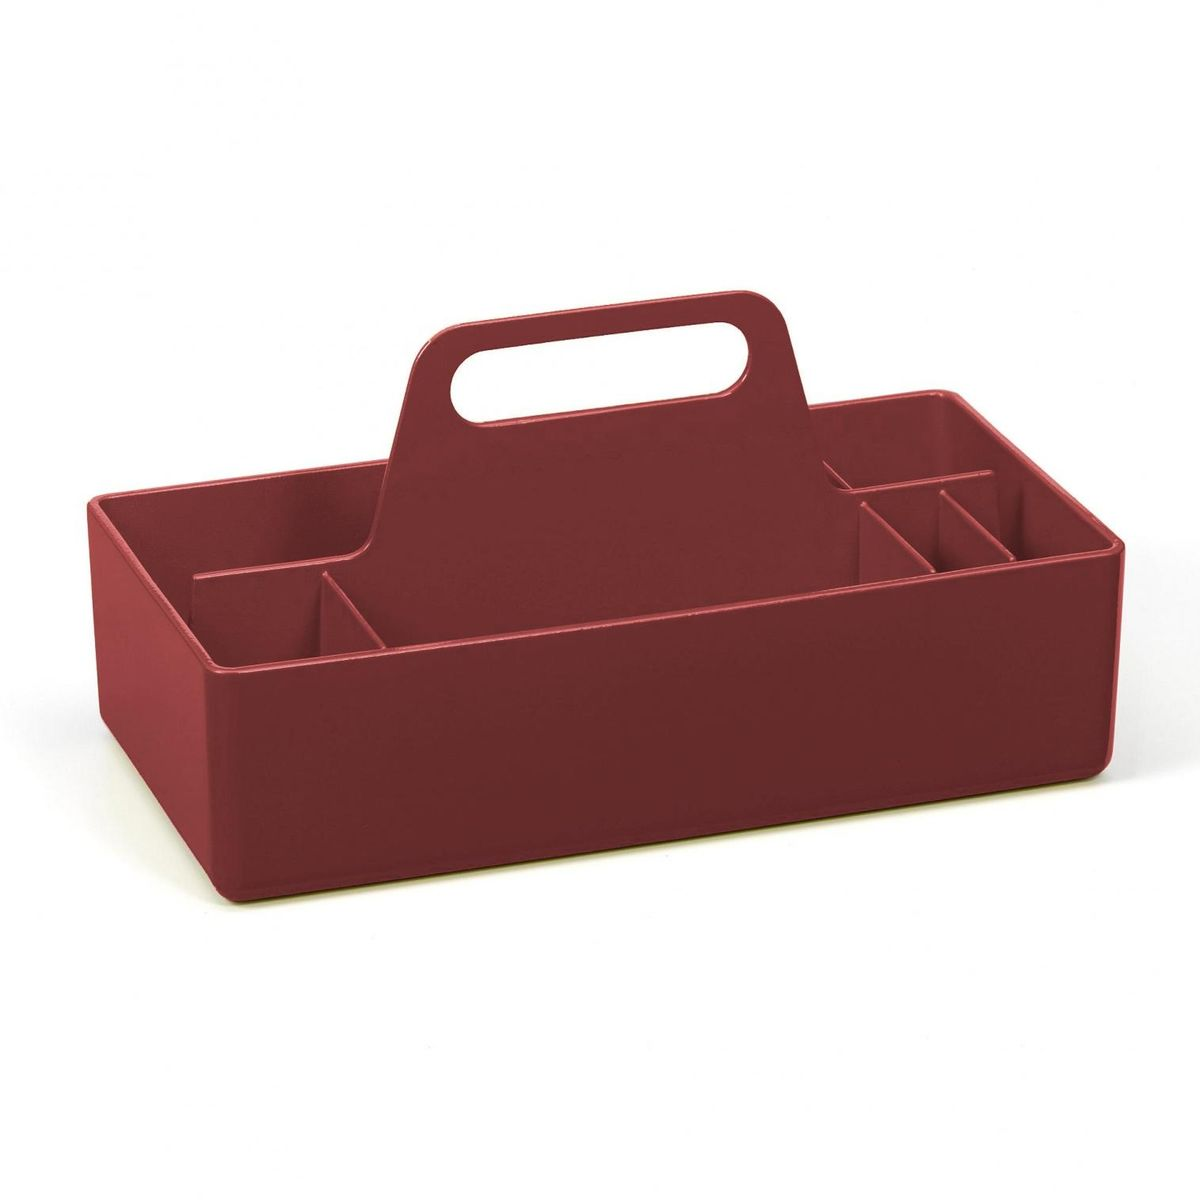 vitra toolbox storage box vitra. Black Bedroom Furniture Sets. Home Design Ideas